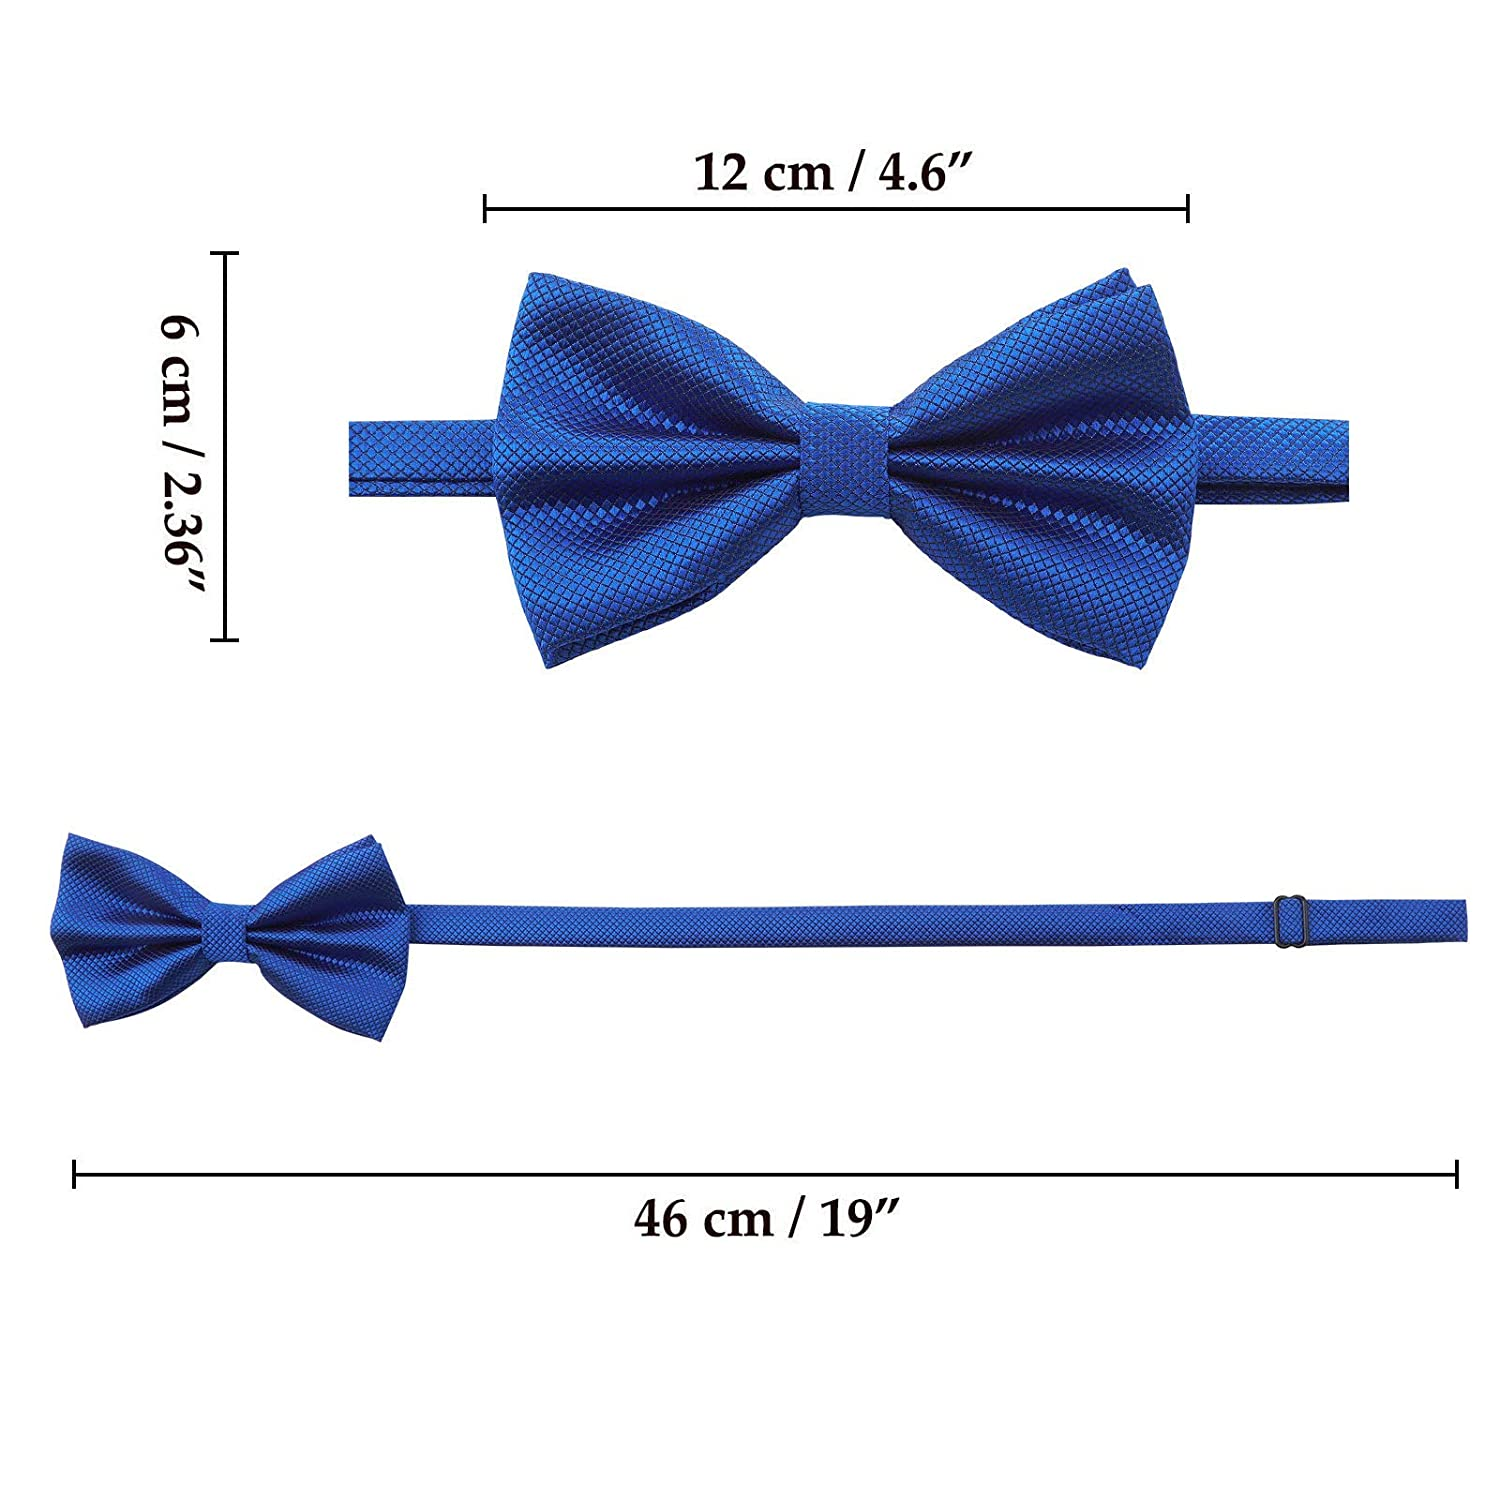 Black Mens Boys Formal Bow Ties 6 Pack of Solid Color Adjustable Pre Tied Bowties